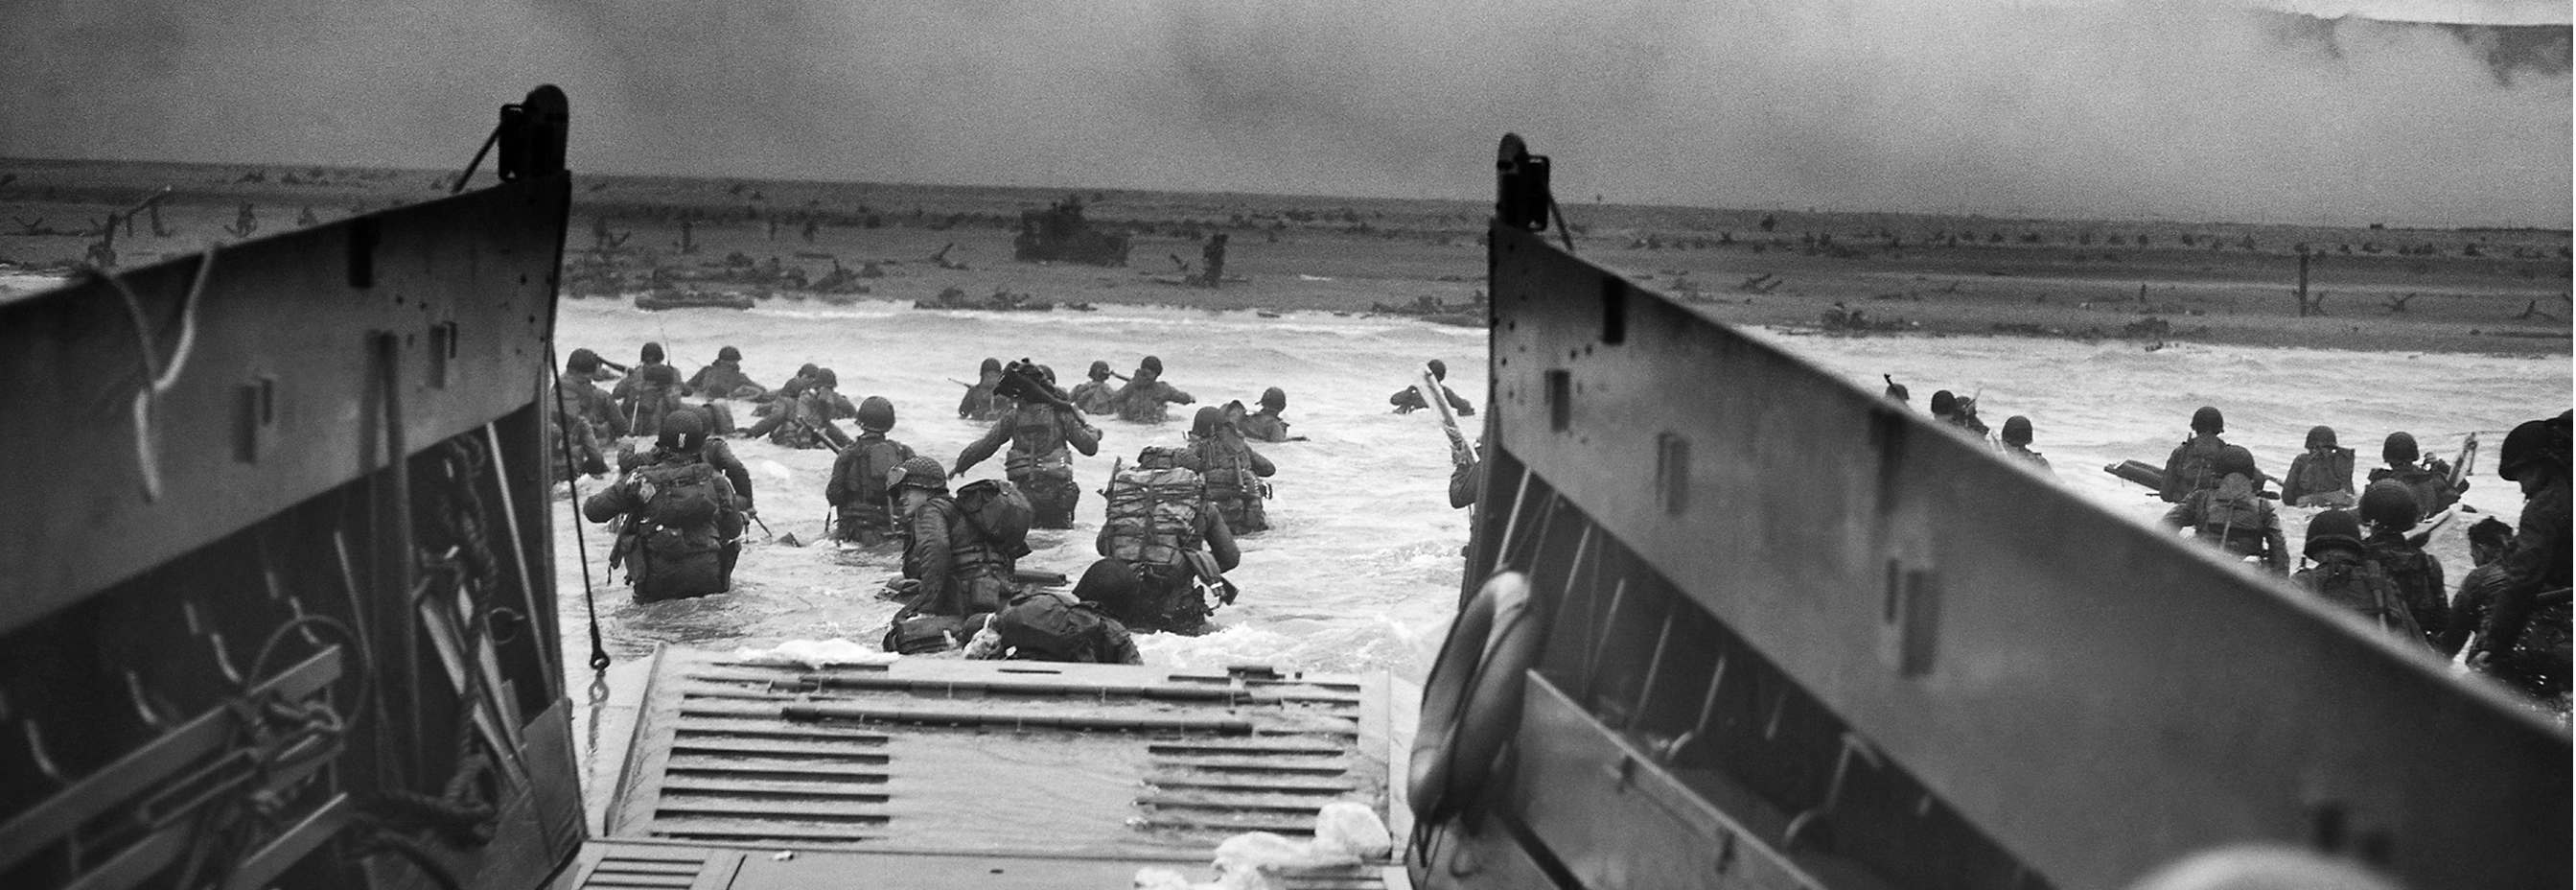 D-Day Normandy Invasion of 1944